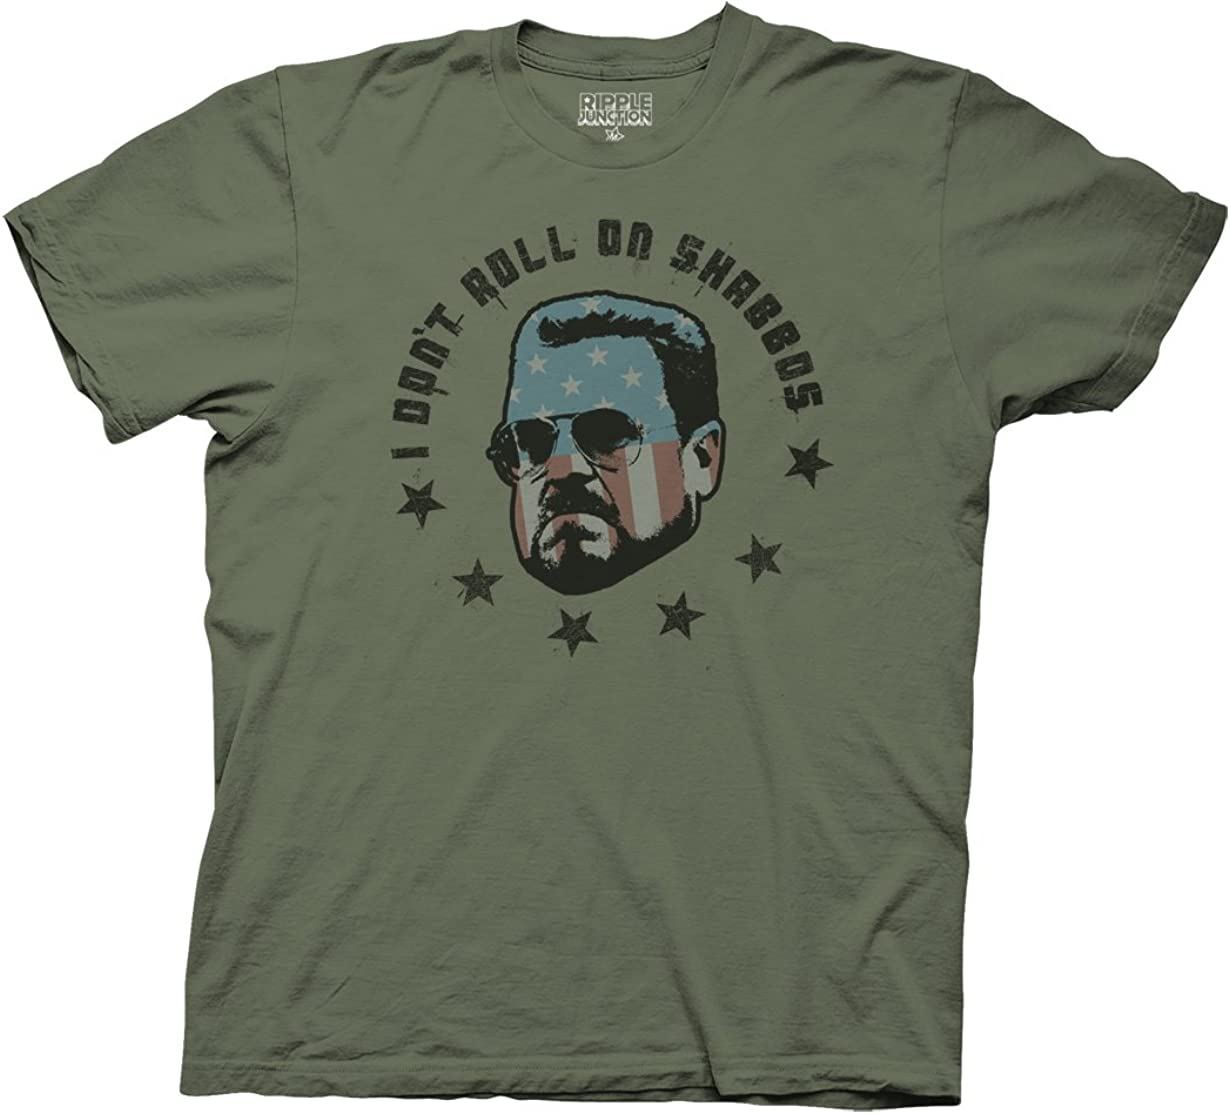 Ripple Junction Big Lebowski Adult Unisex Roll on Shabbas Heavy Weight 100% Cotton Crew T-Shirt